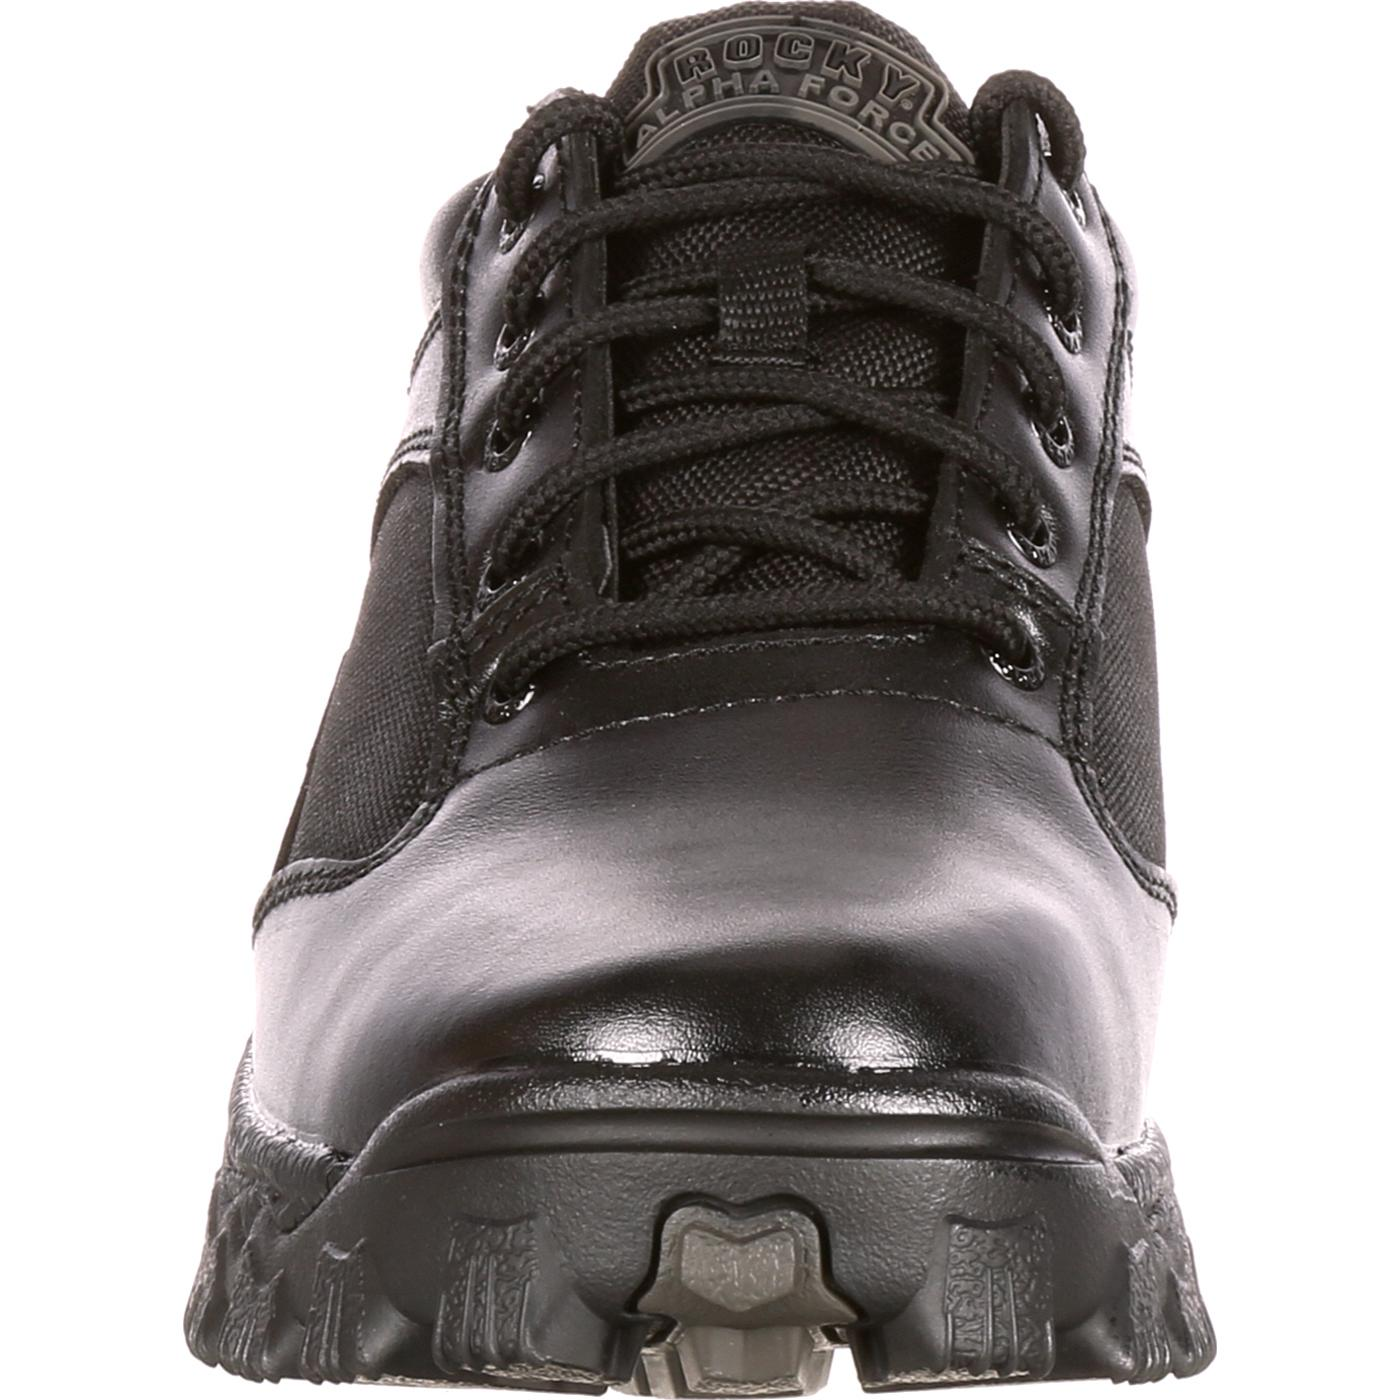 Images. Rocky AlphaForce Oxford Shoe ...